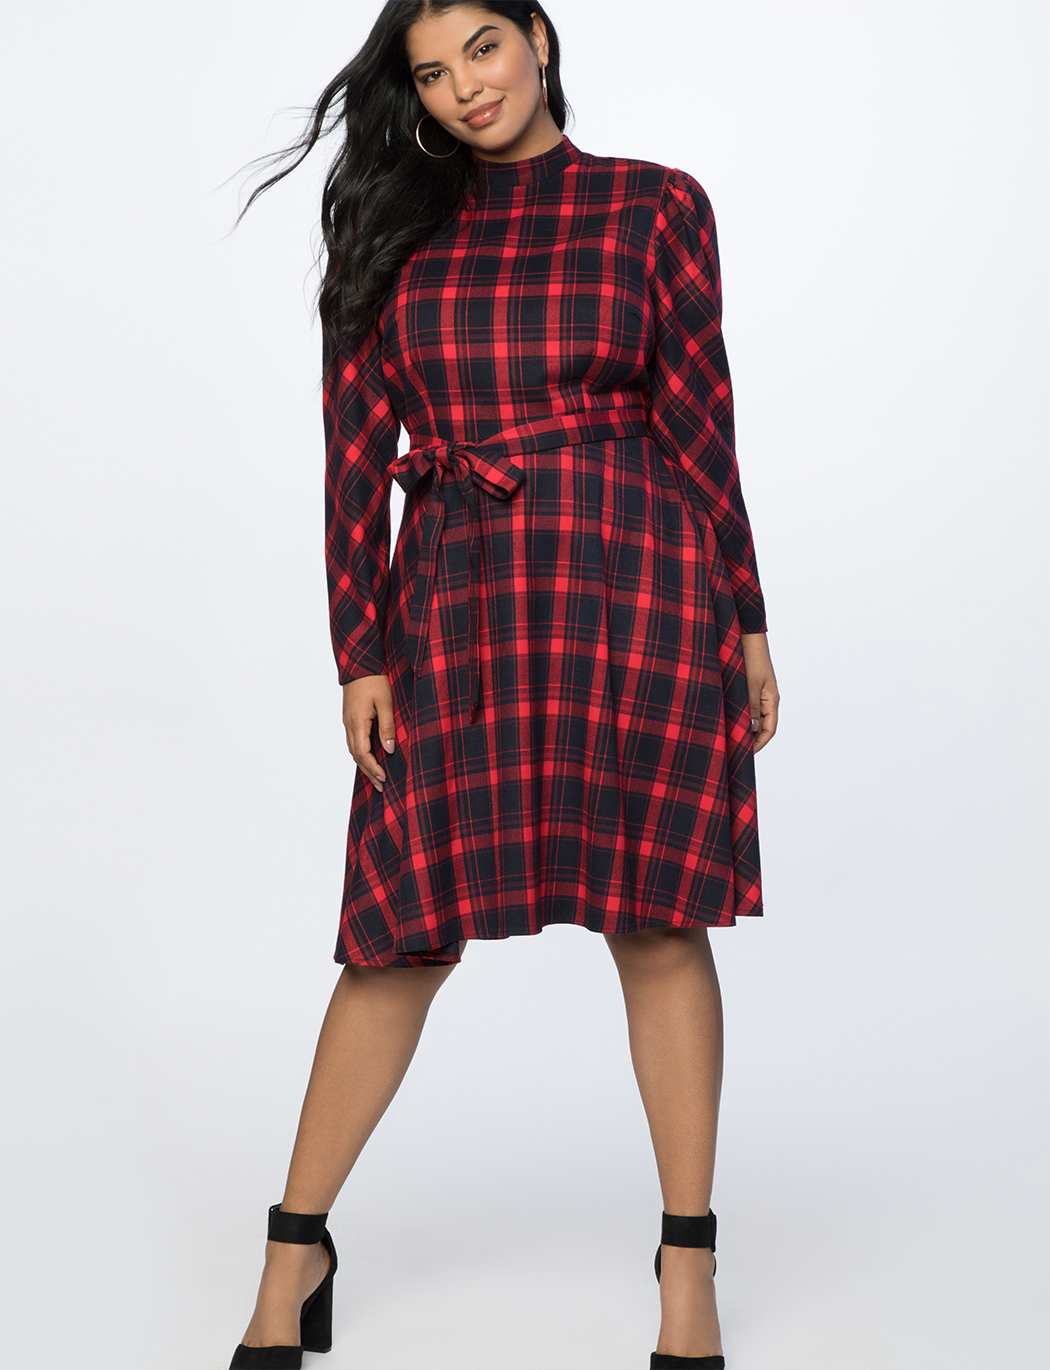 0a457fc580c Fit and Flare Plaid Dress | Women's Plus Size Dresses | ELOQUII